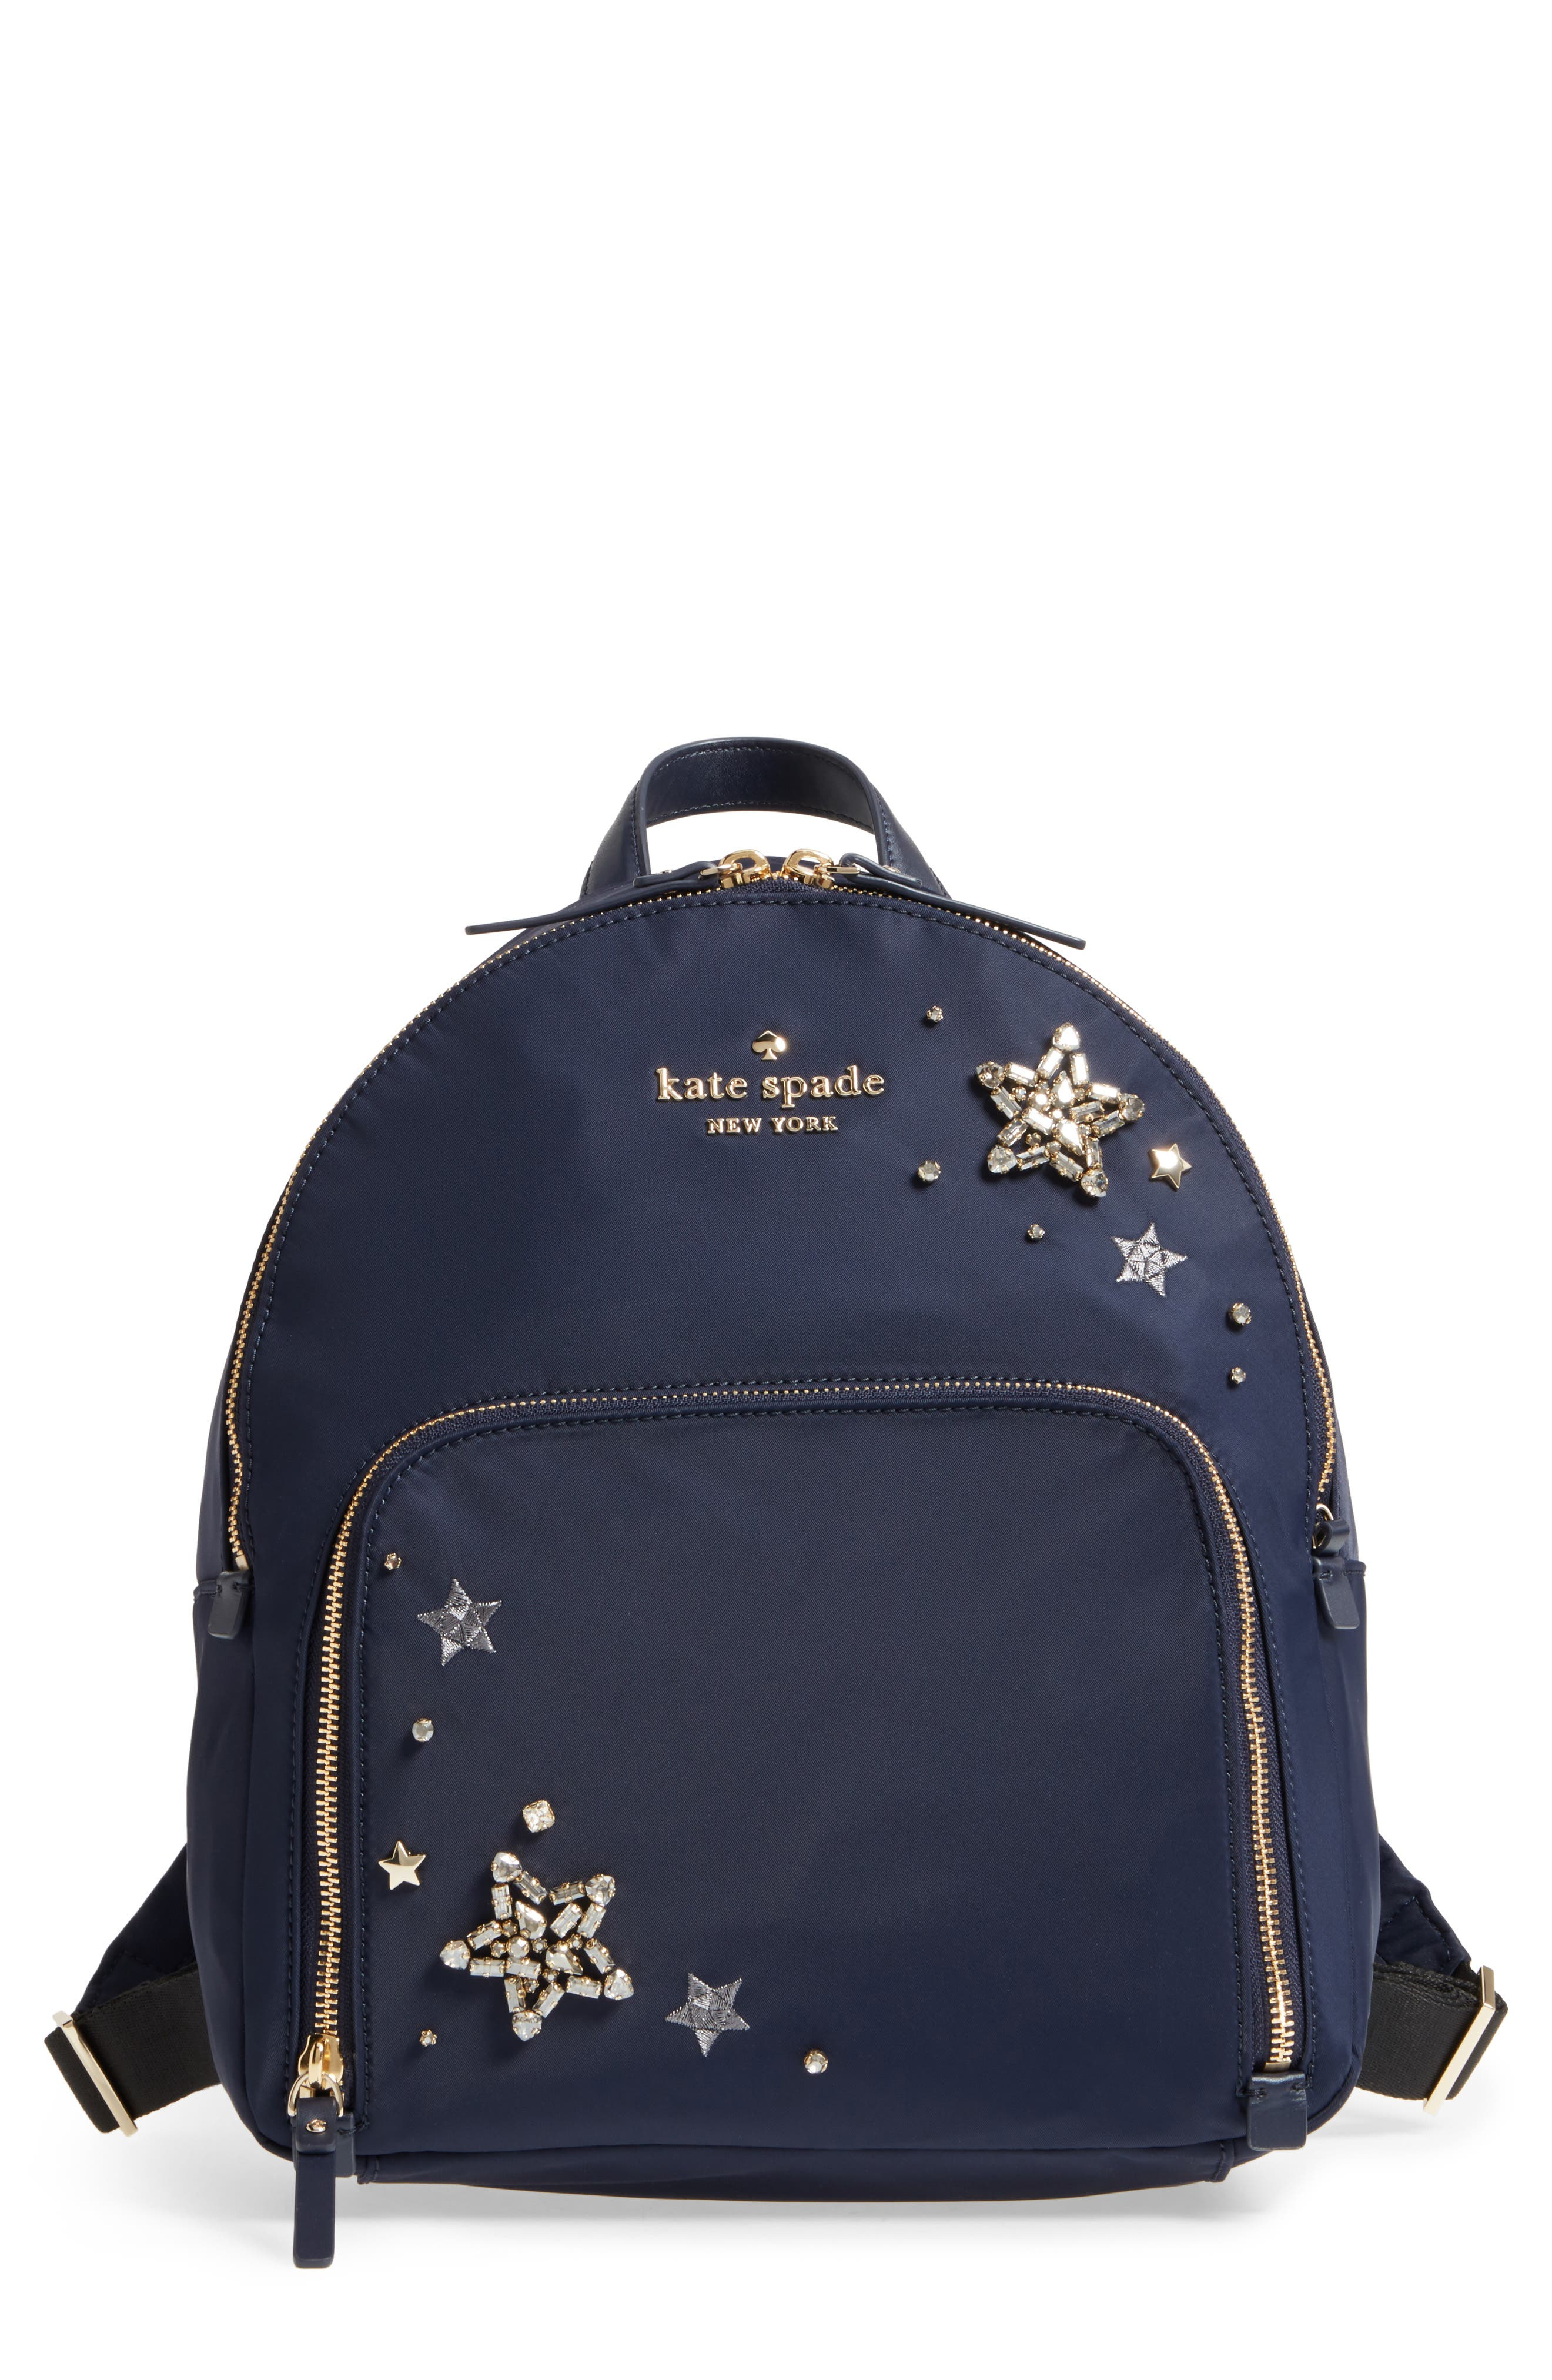 watson lane - hartley embellished nylon backpack,                         Main,                         color, Rich Navy